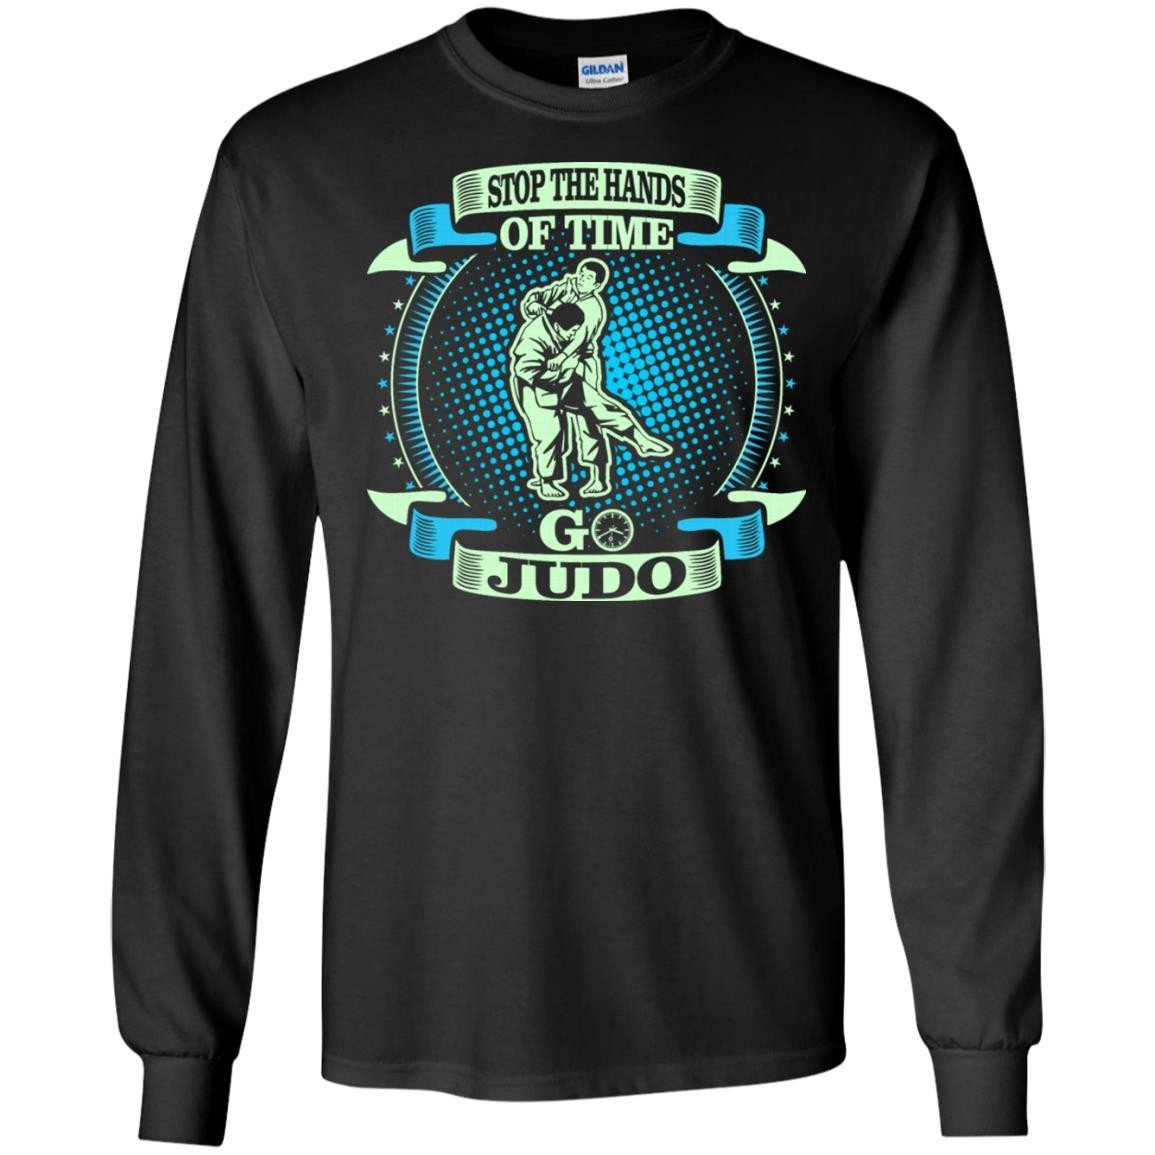 Stop Hands Of Time Go Judo Karate Outdoors T-Shirt Long Sleeve 240 ... 0086054f1